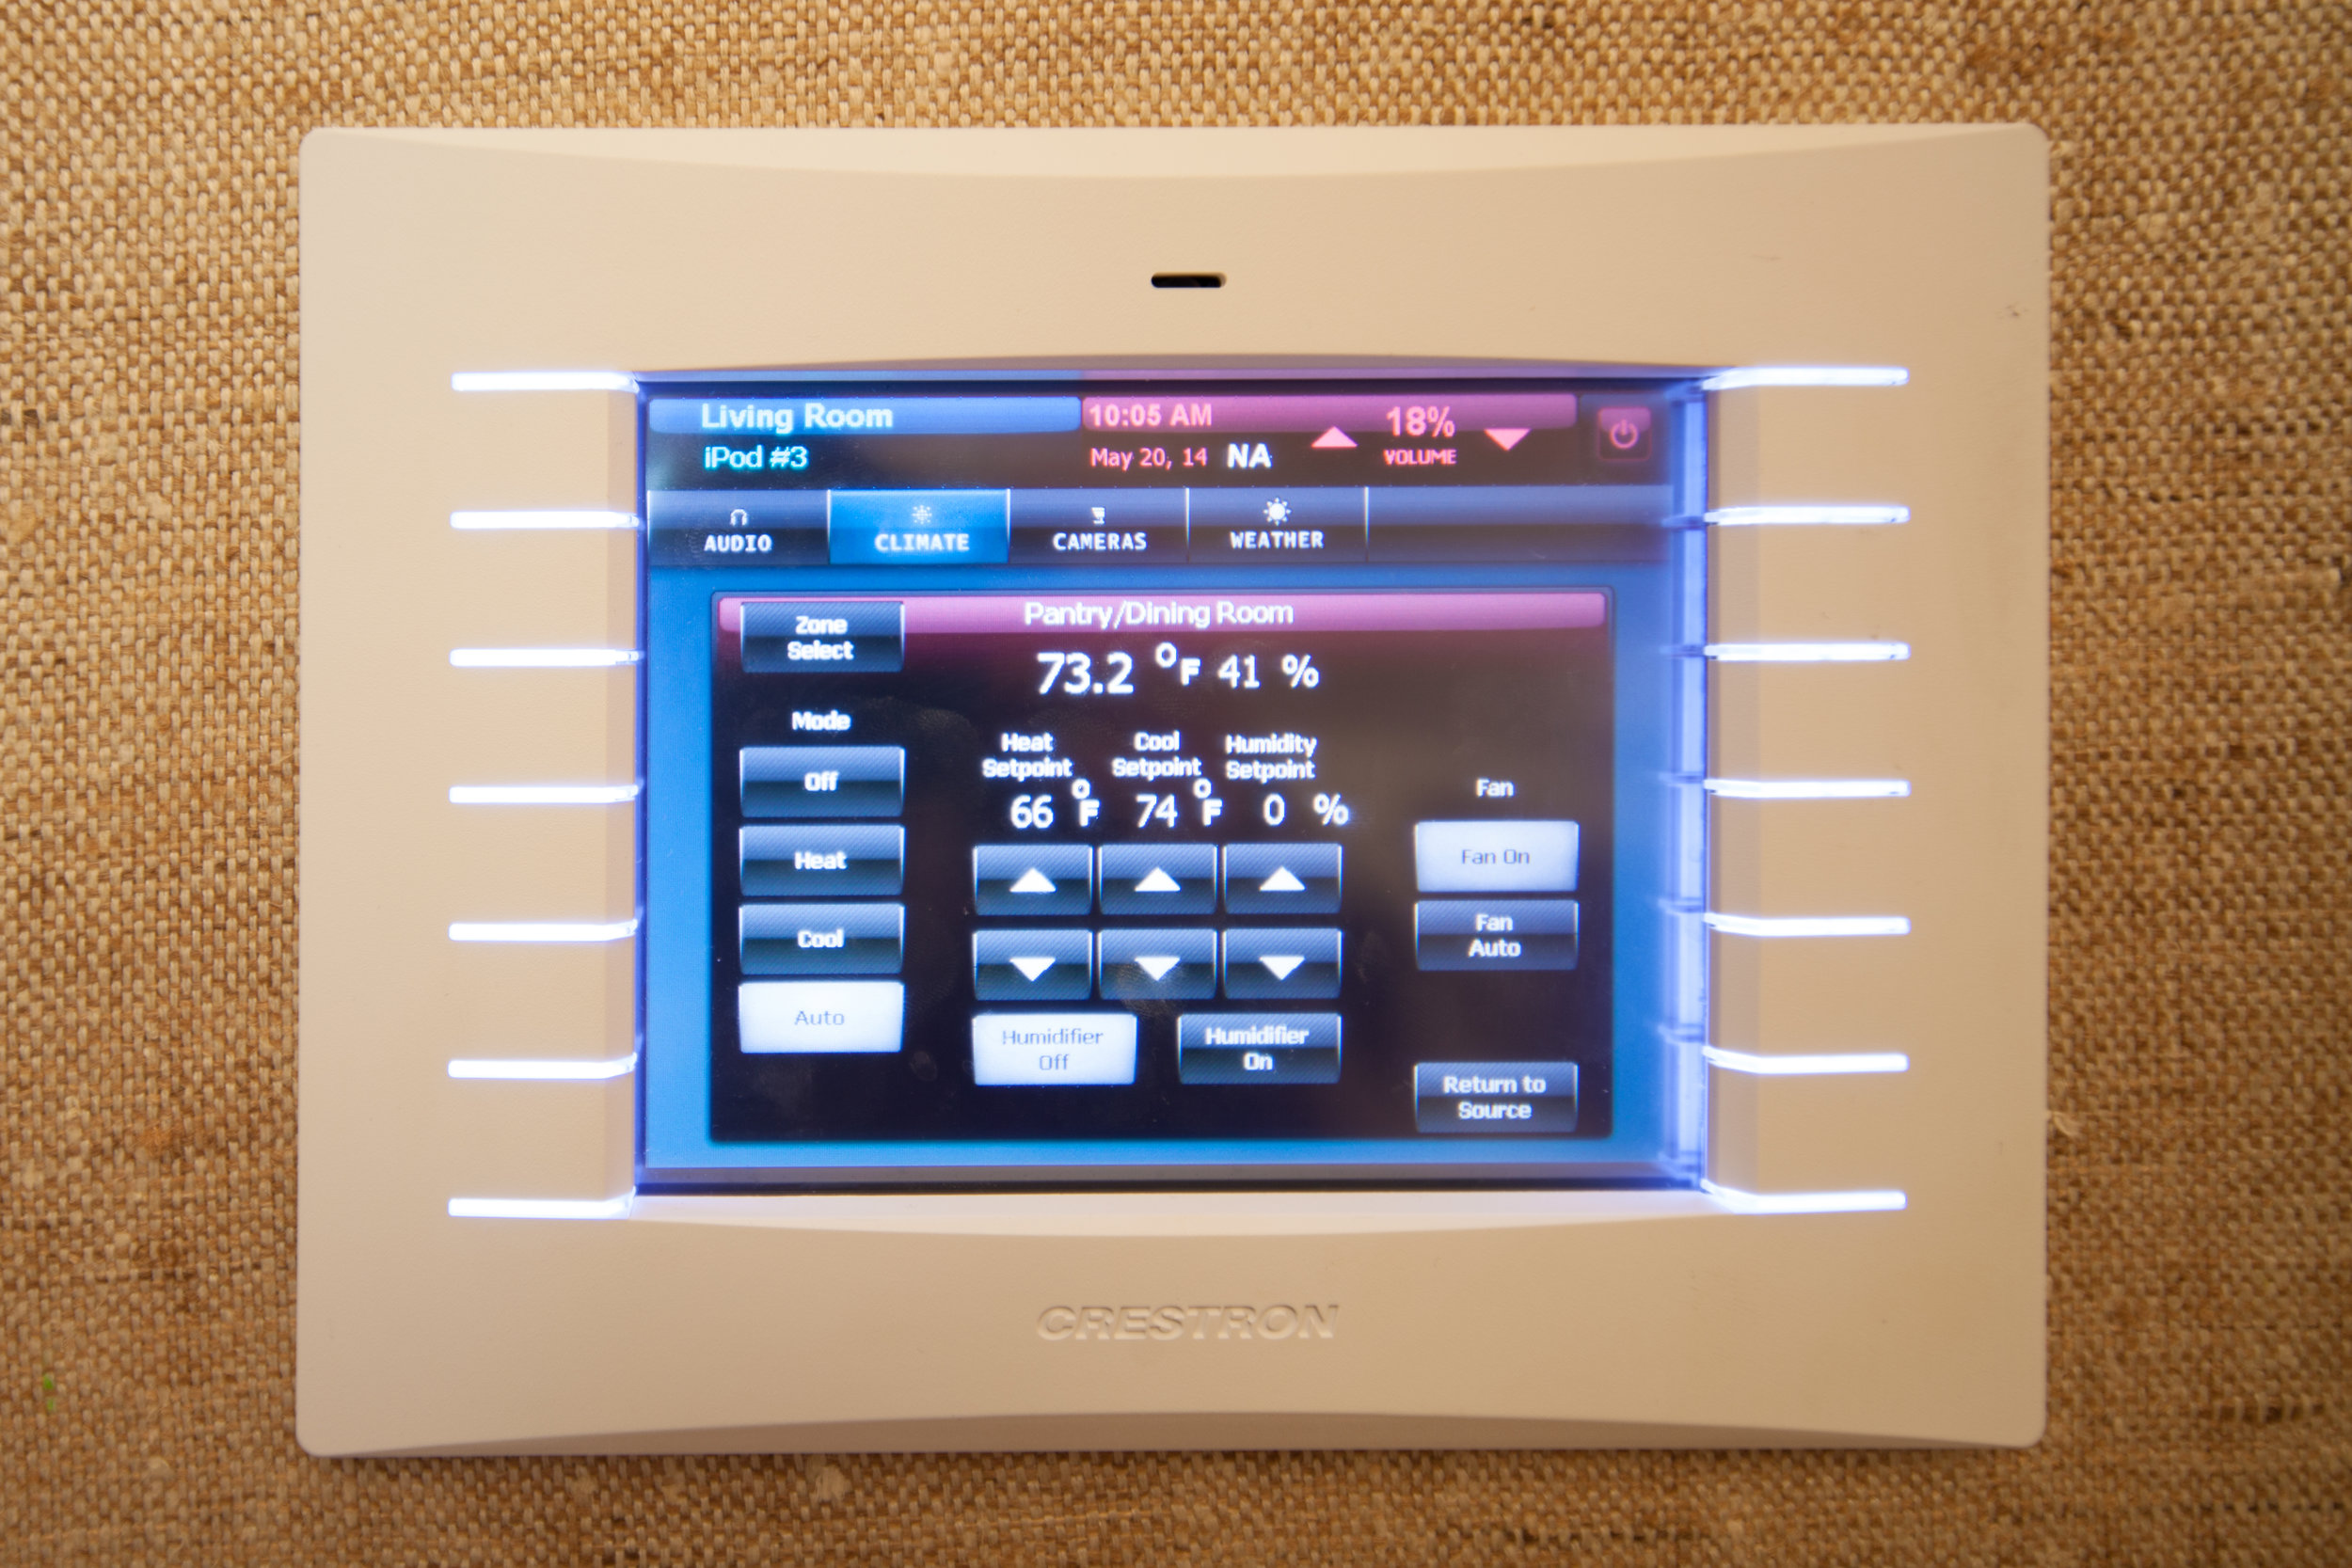 Customized control for accurate and tailored temperature and humidity levels for each resident's comfort.